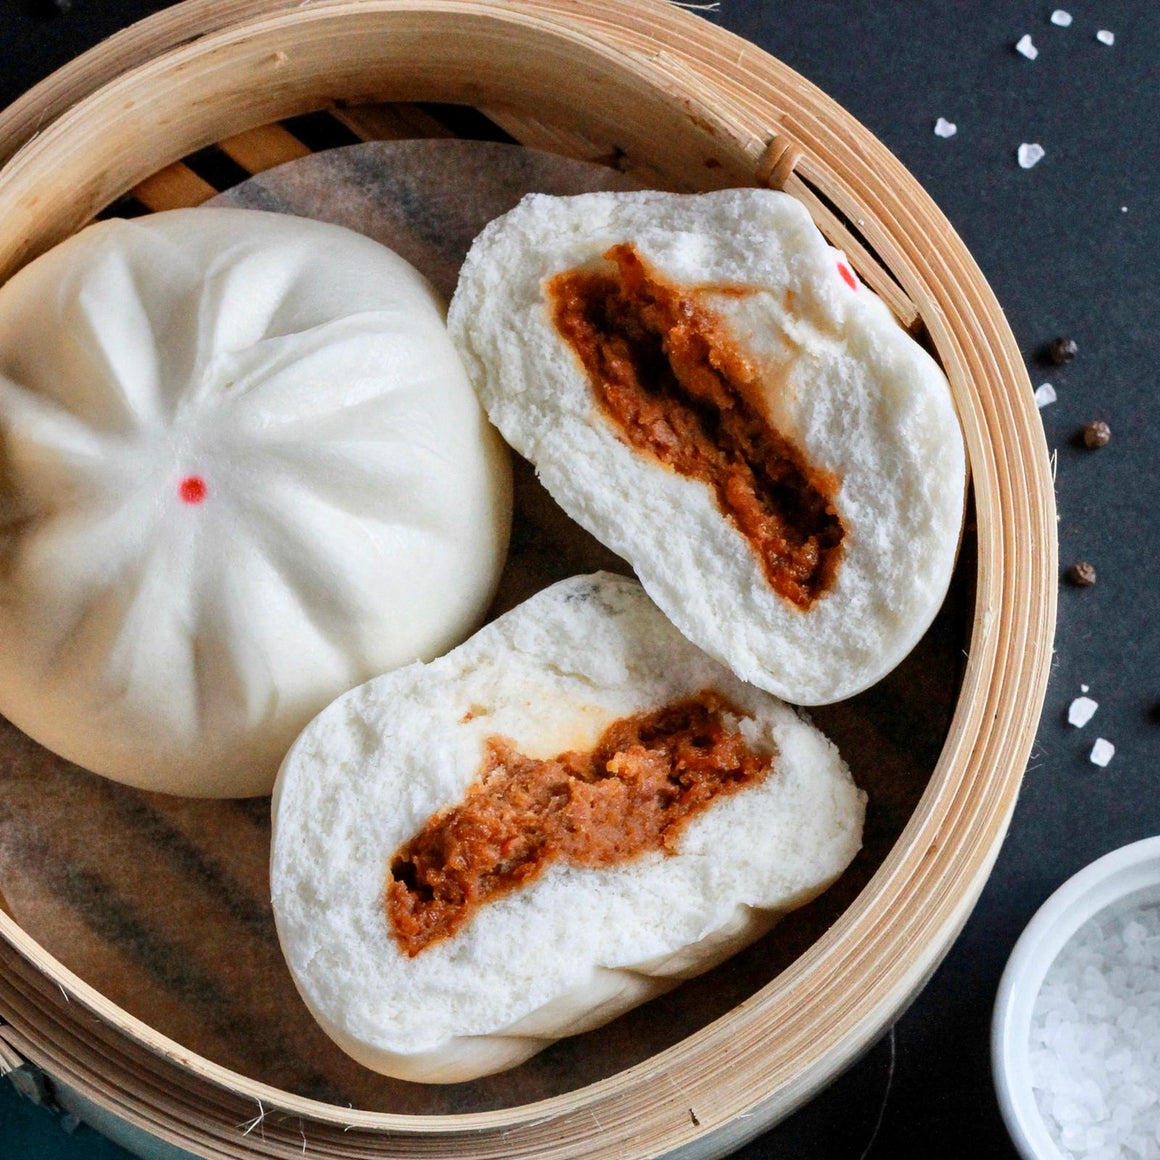 BBQ Pork Buns 100g x 6 Pieces